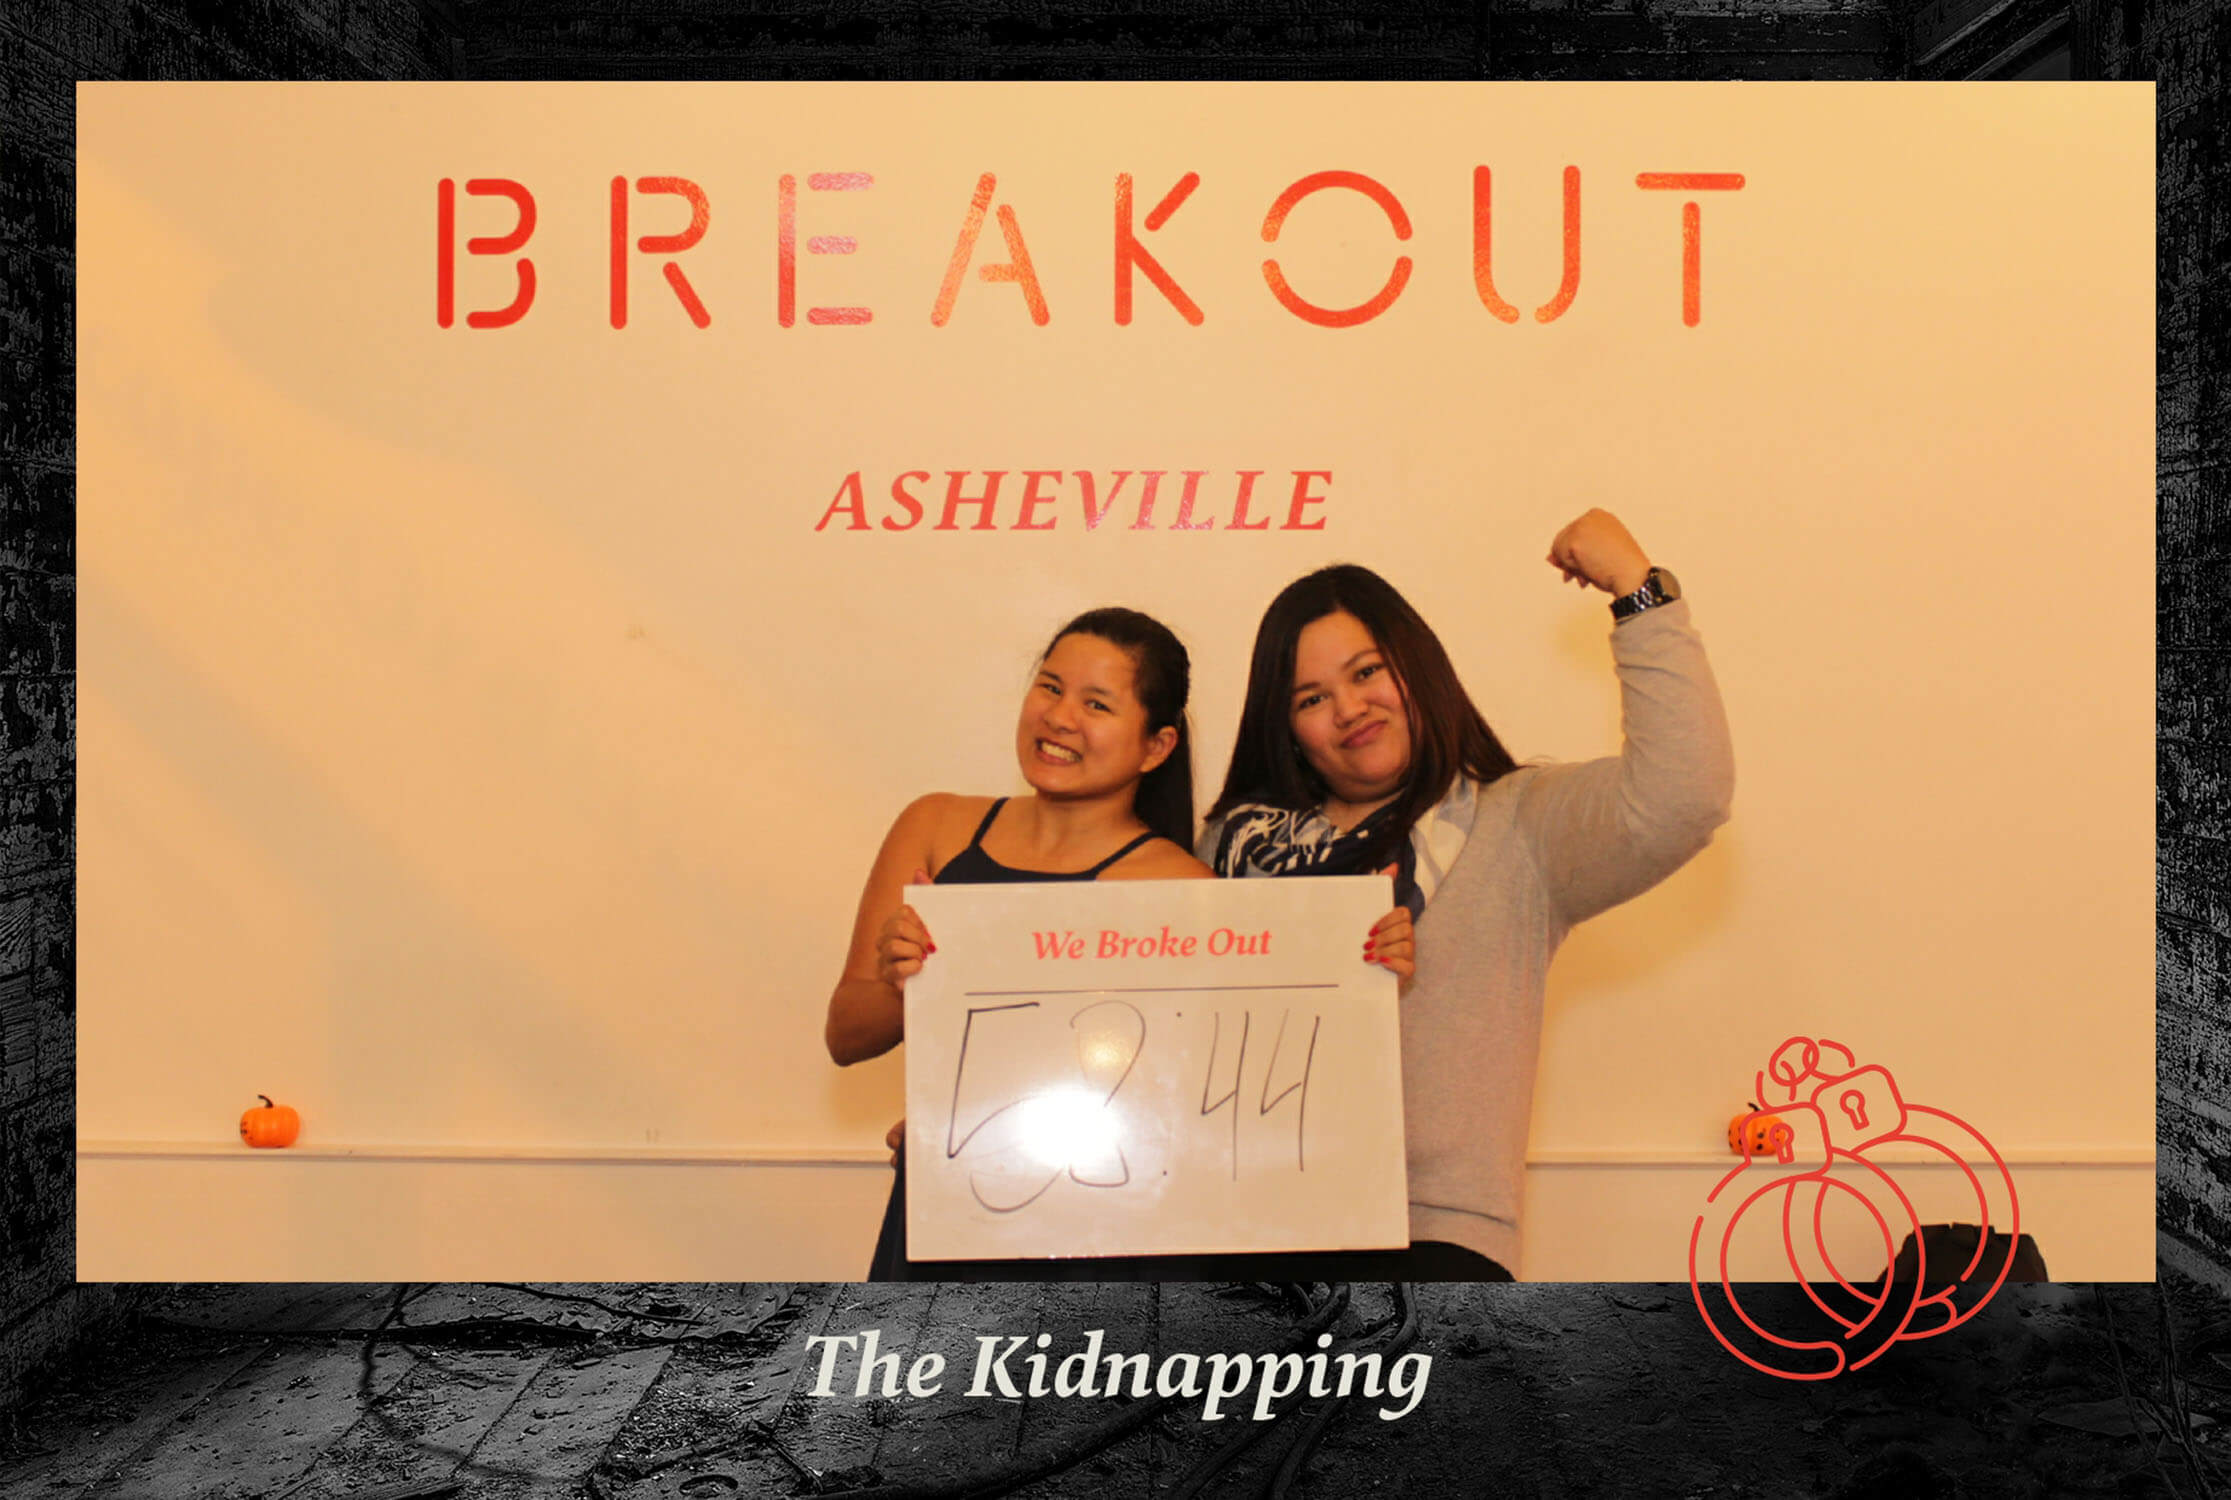 Breakout Asheville: An Asheville Escape Room Experience - Hungry